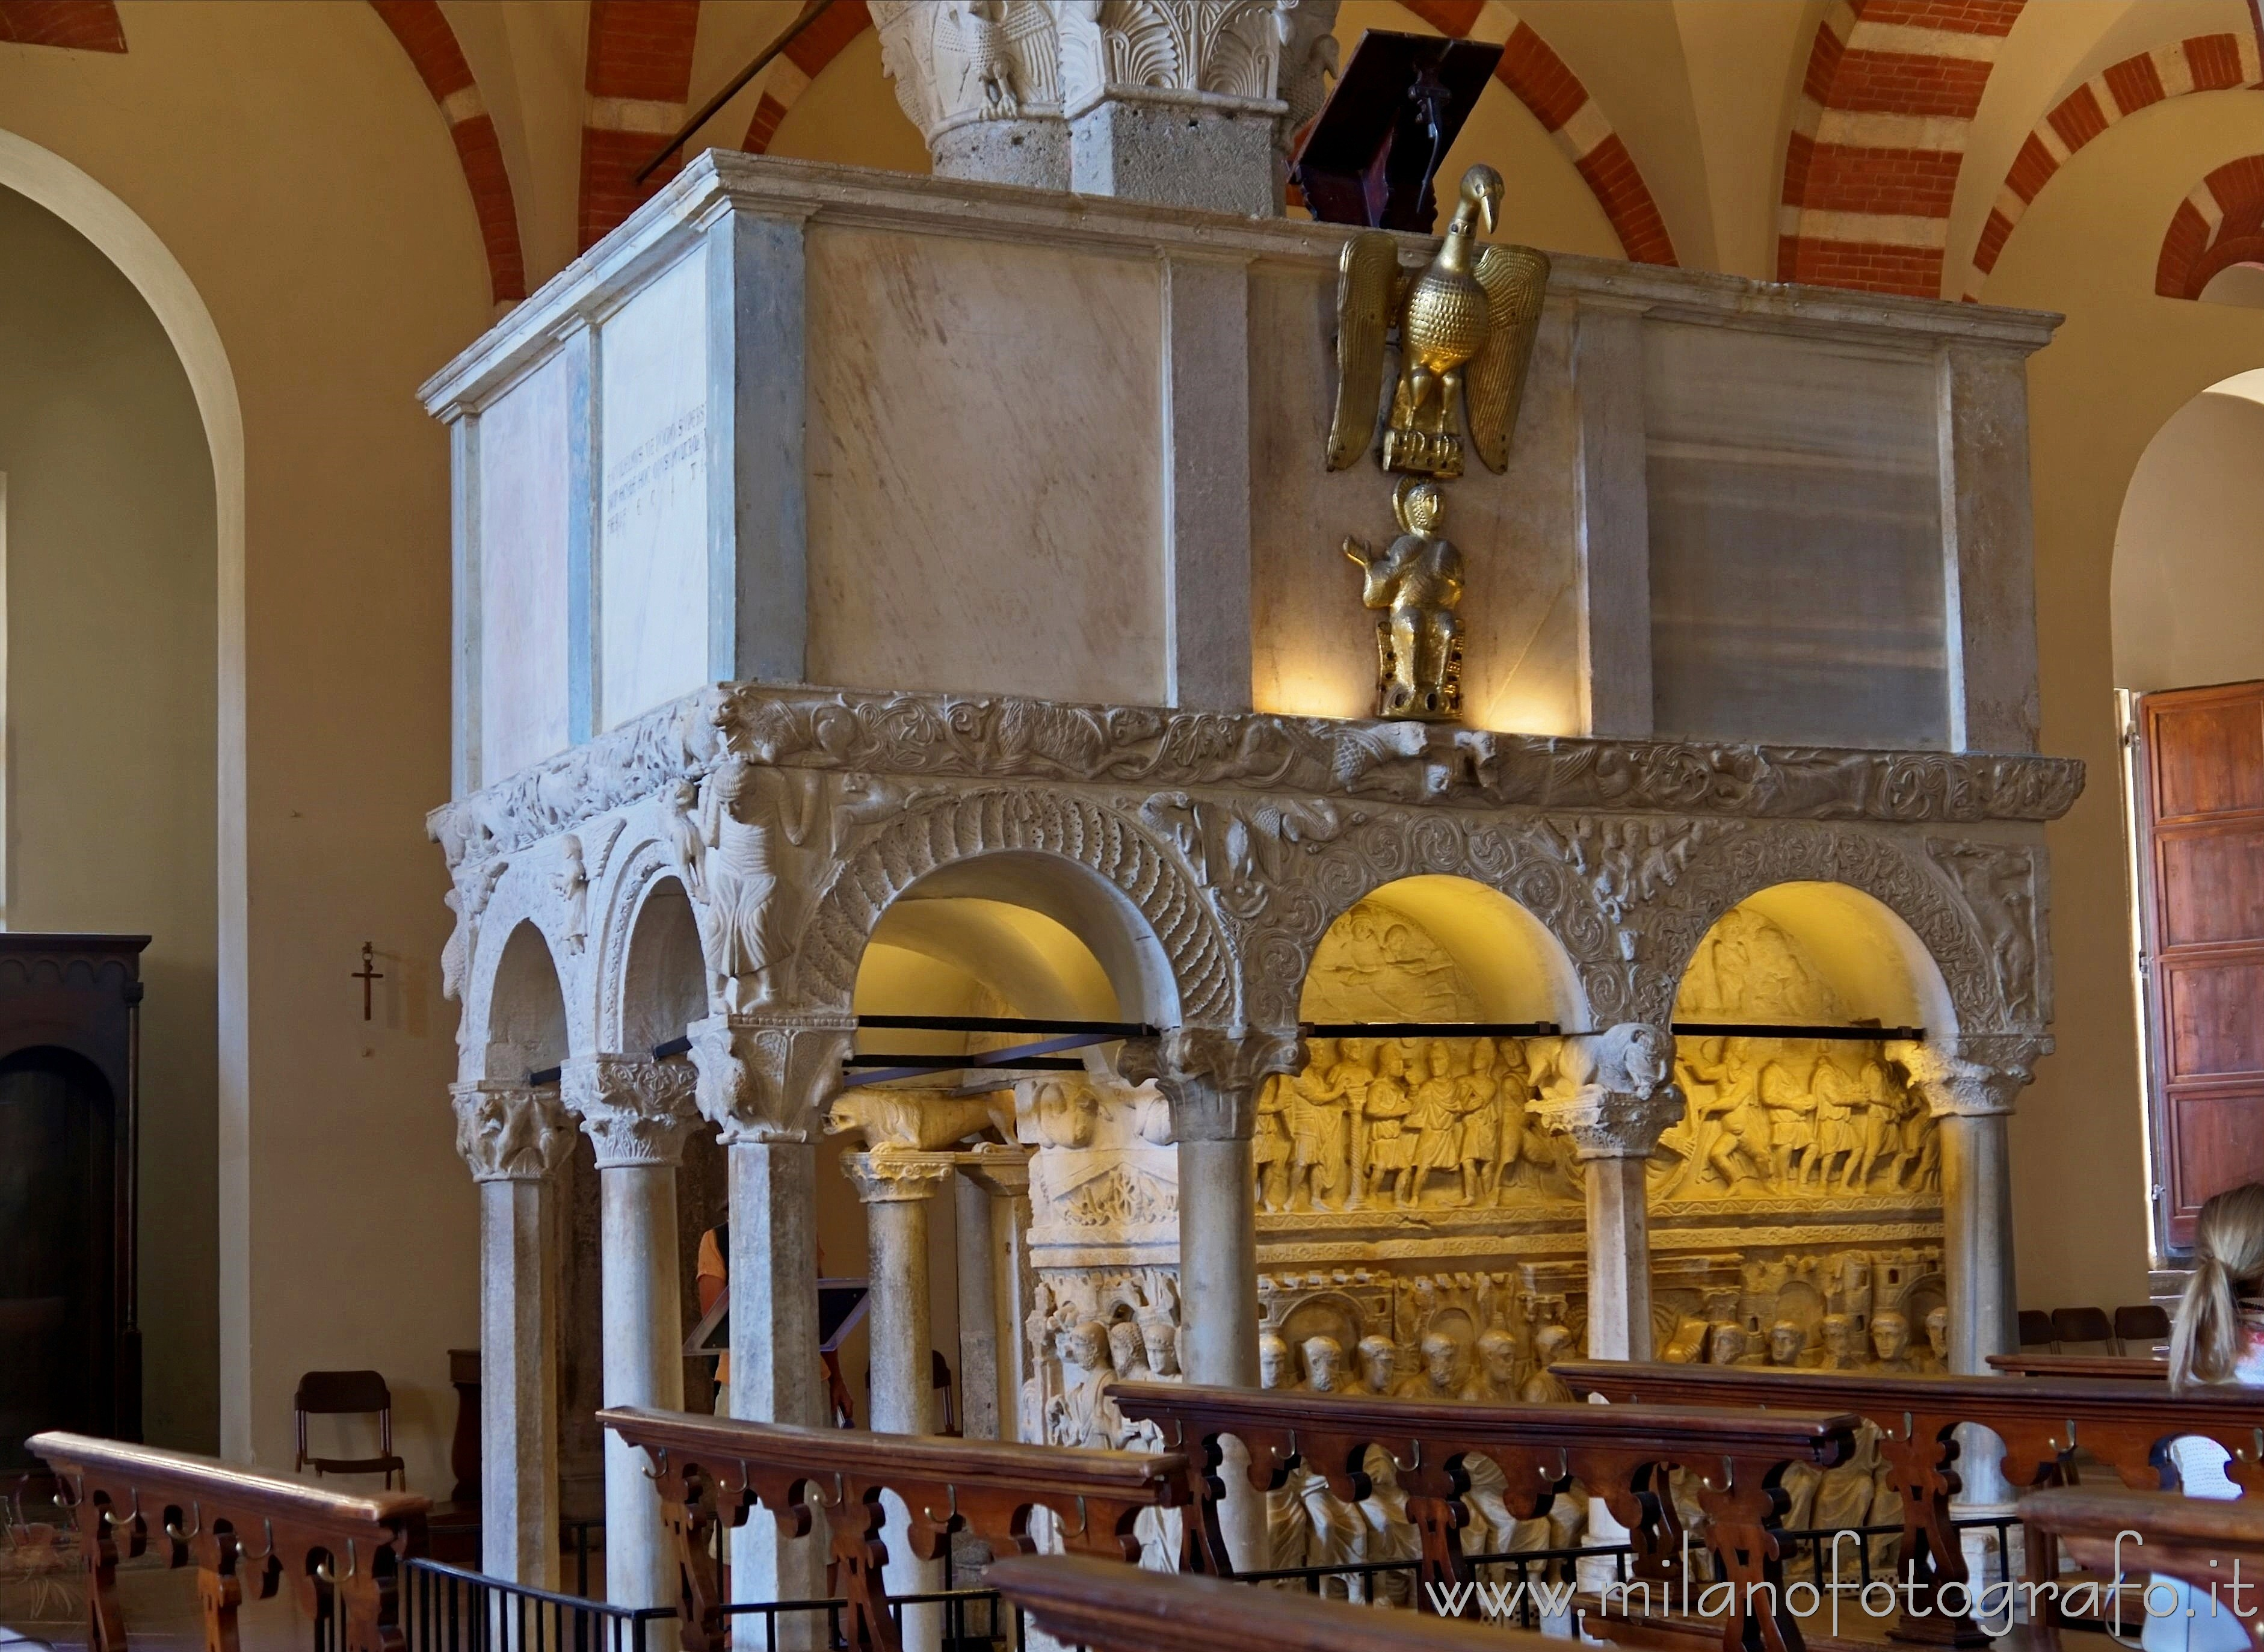 Milan (Italy): The pulpit of the Basilica of Sant'Ambrogio - Milan (Italy)